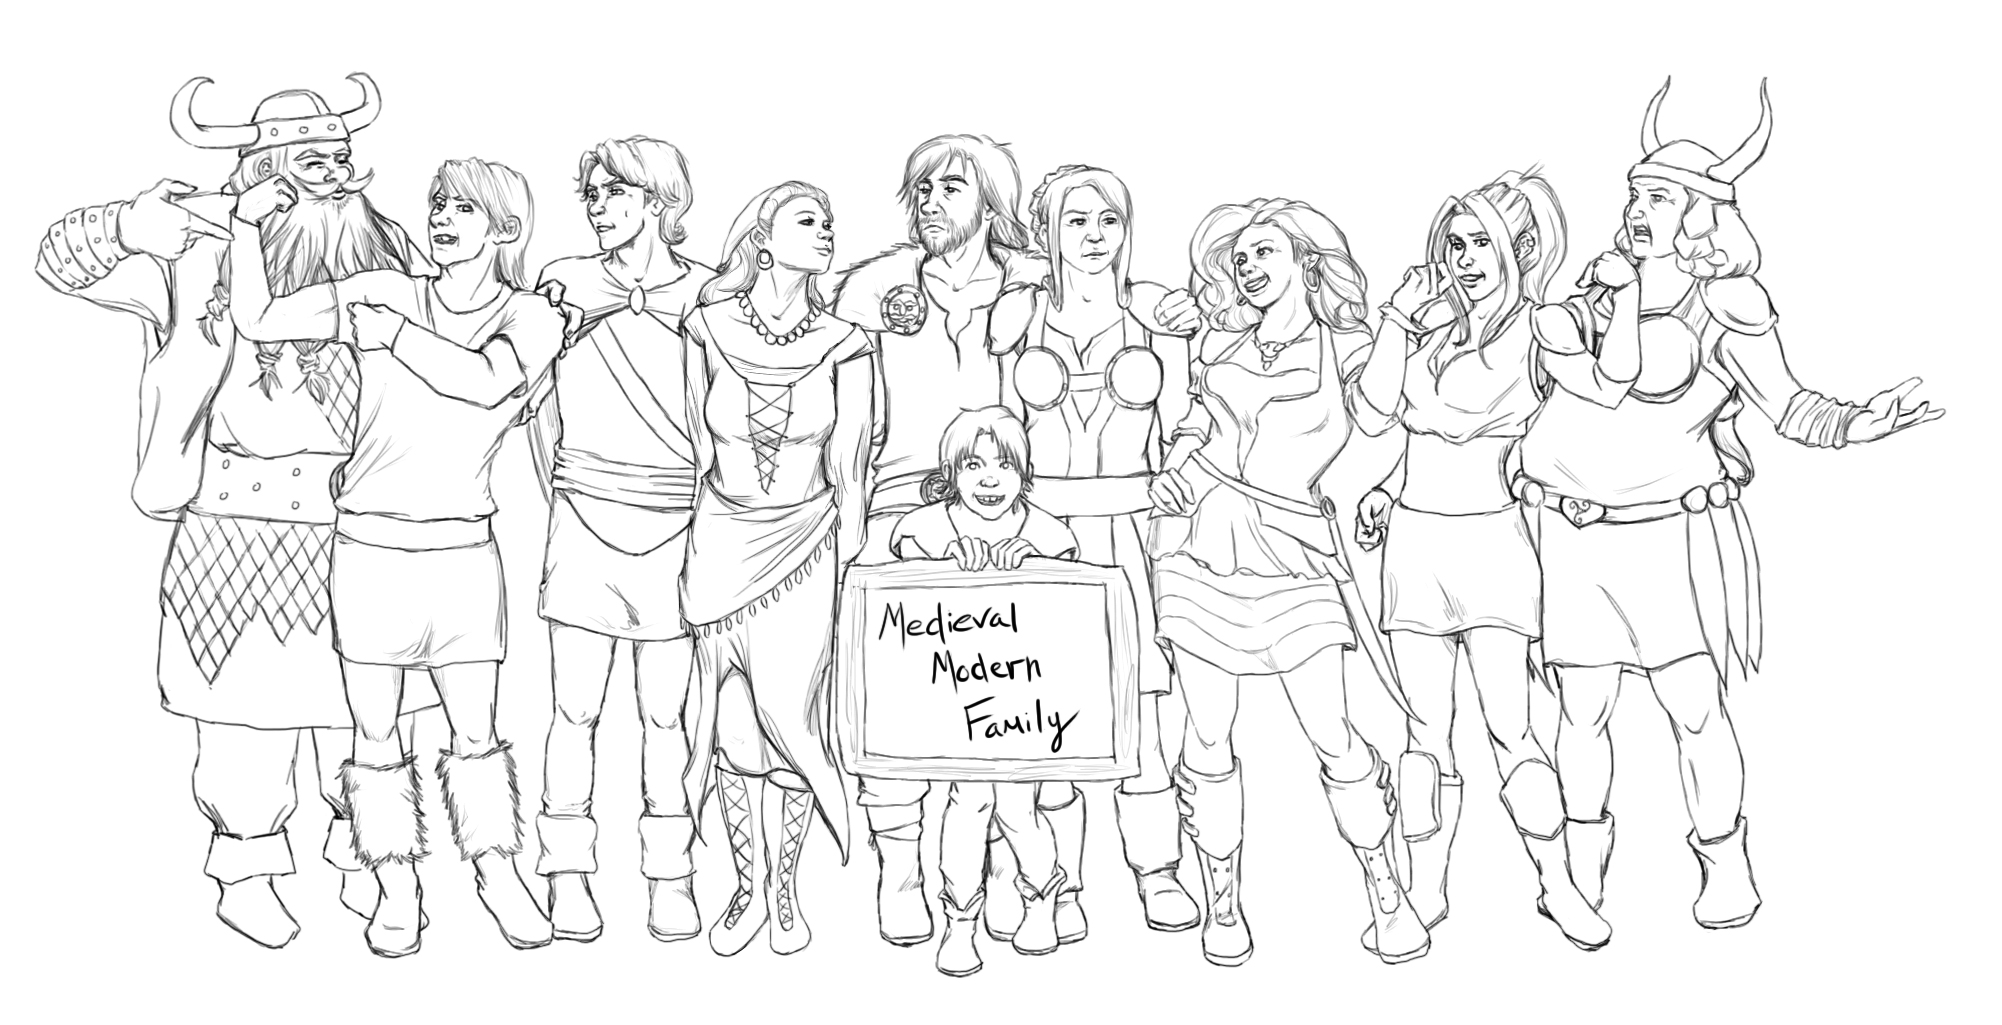 modern family coloring pages | Medieval Modern Family by AvannaK on DeviantArt